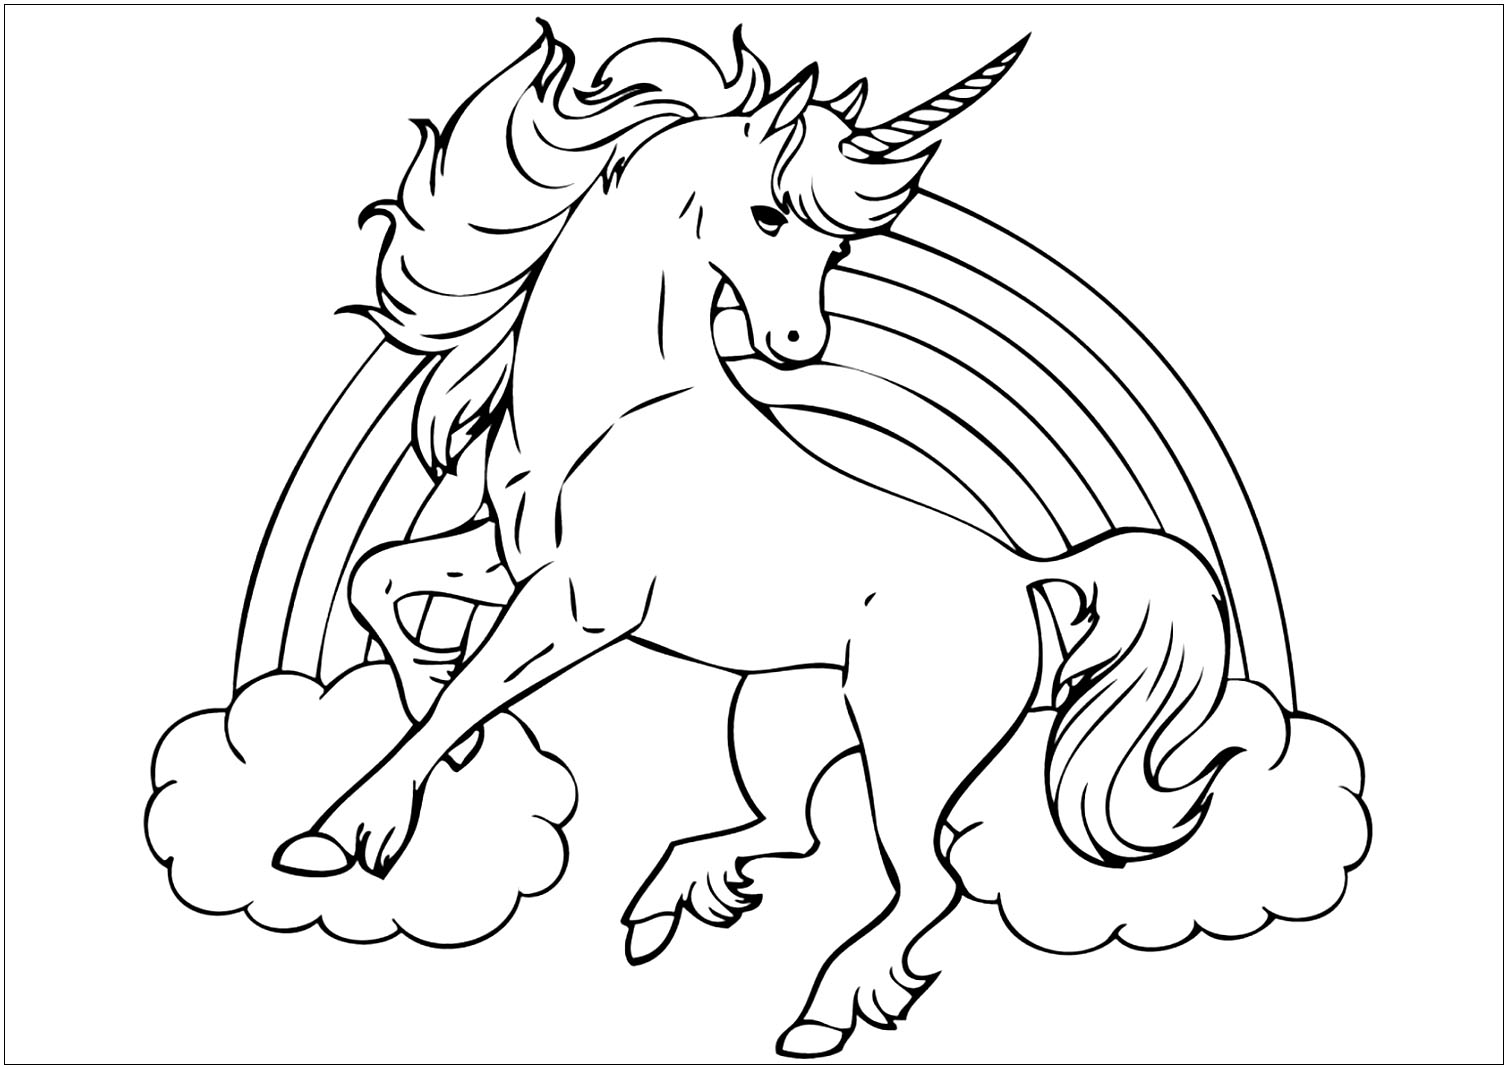 coloring for unicorn unicorns free to color for kids unicorns kids coloring pages for coloring unicorn